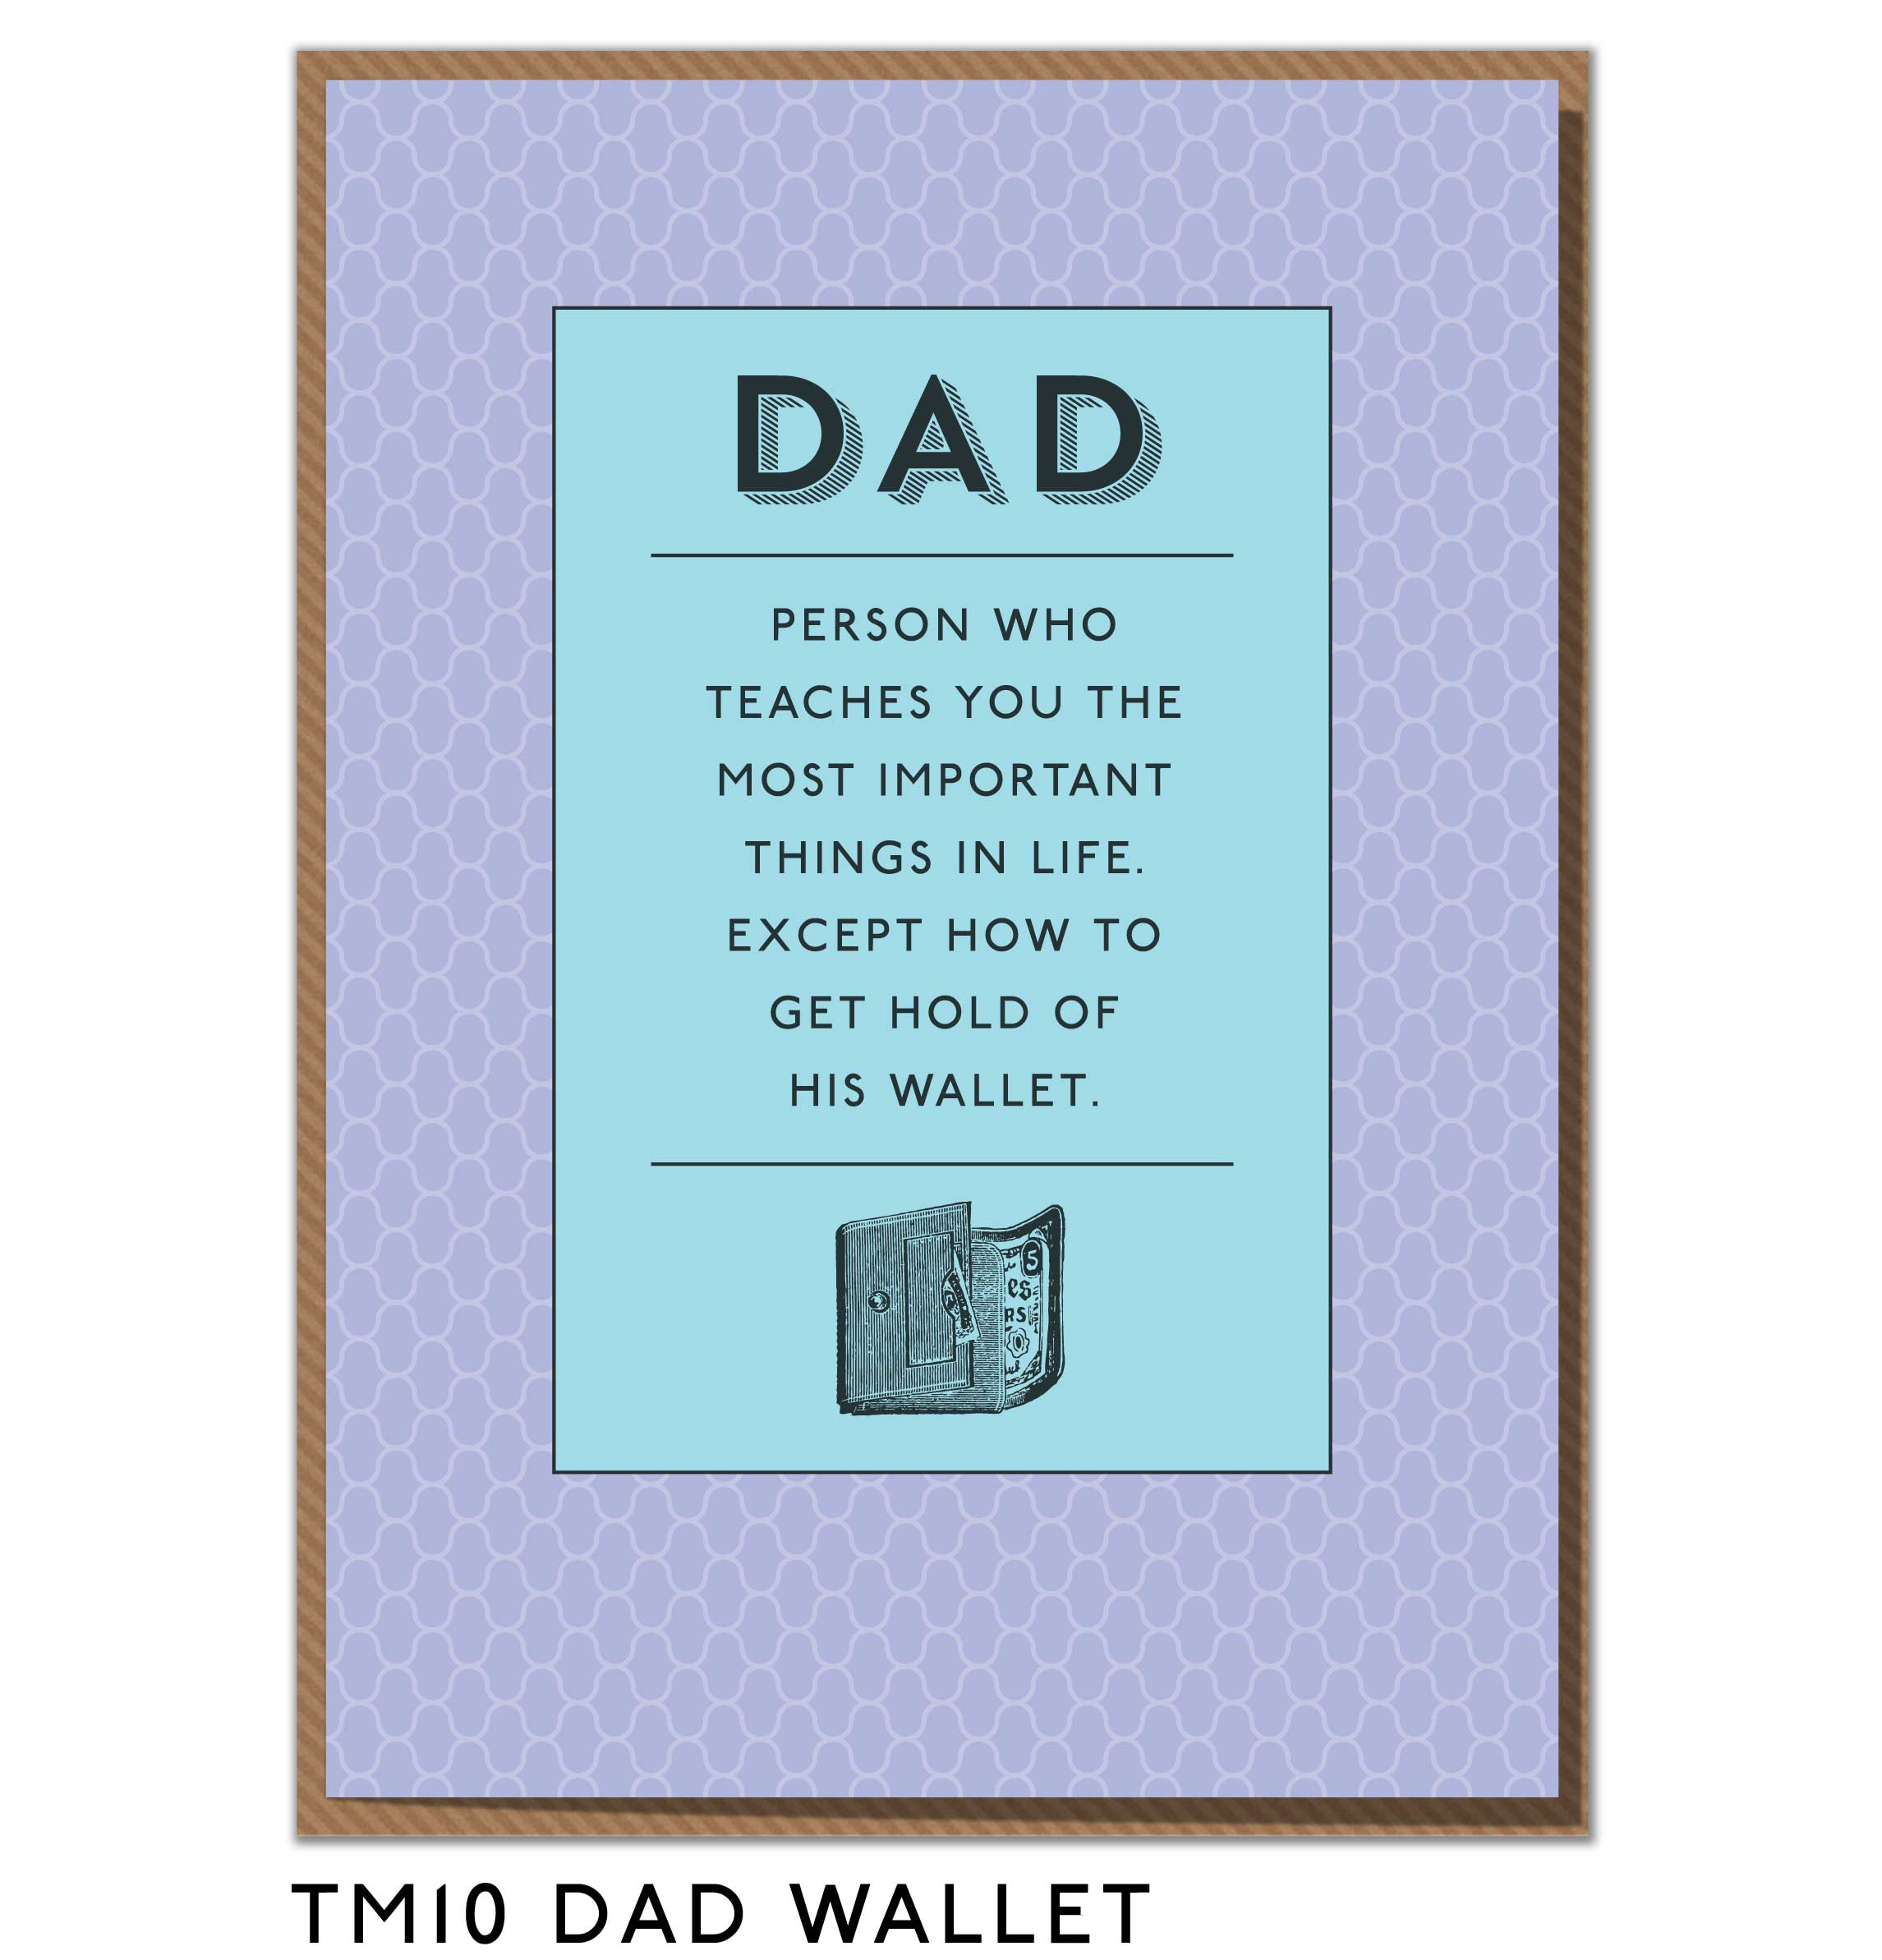 TM10-DAD-WALLET.jpg